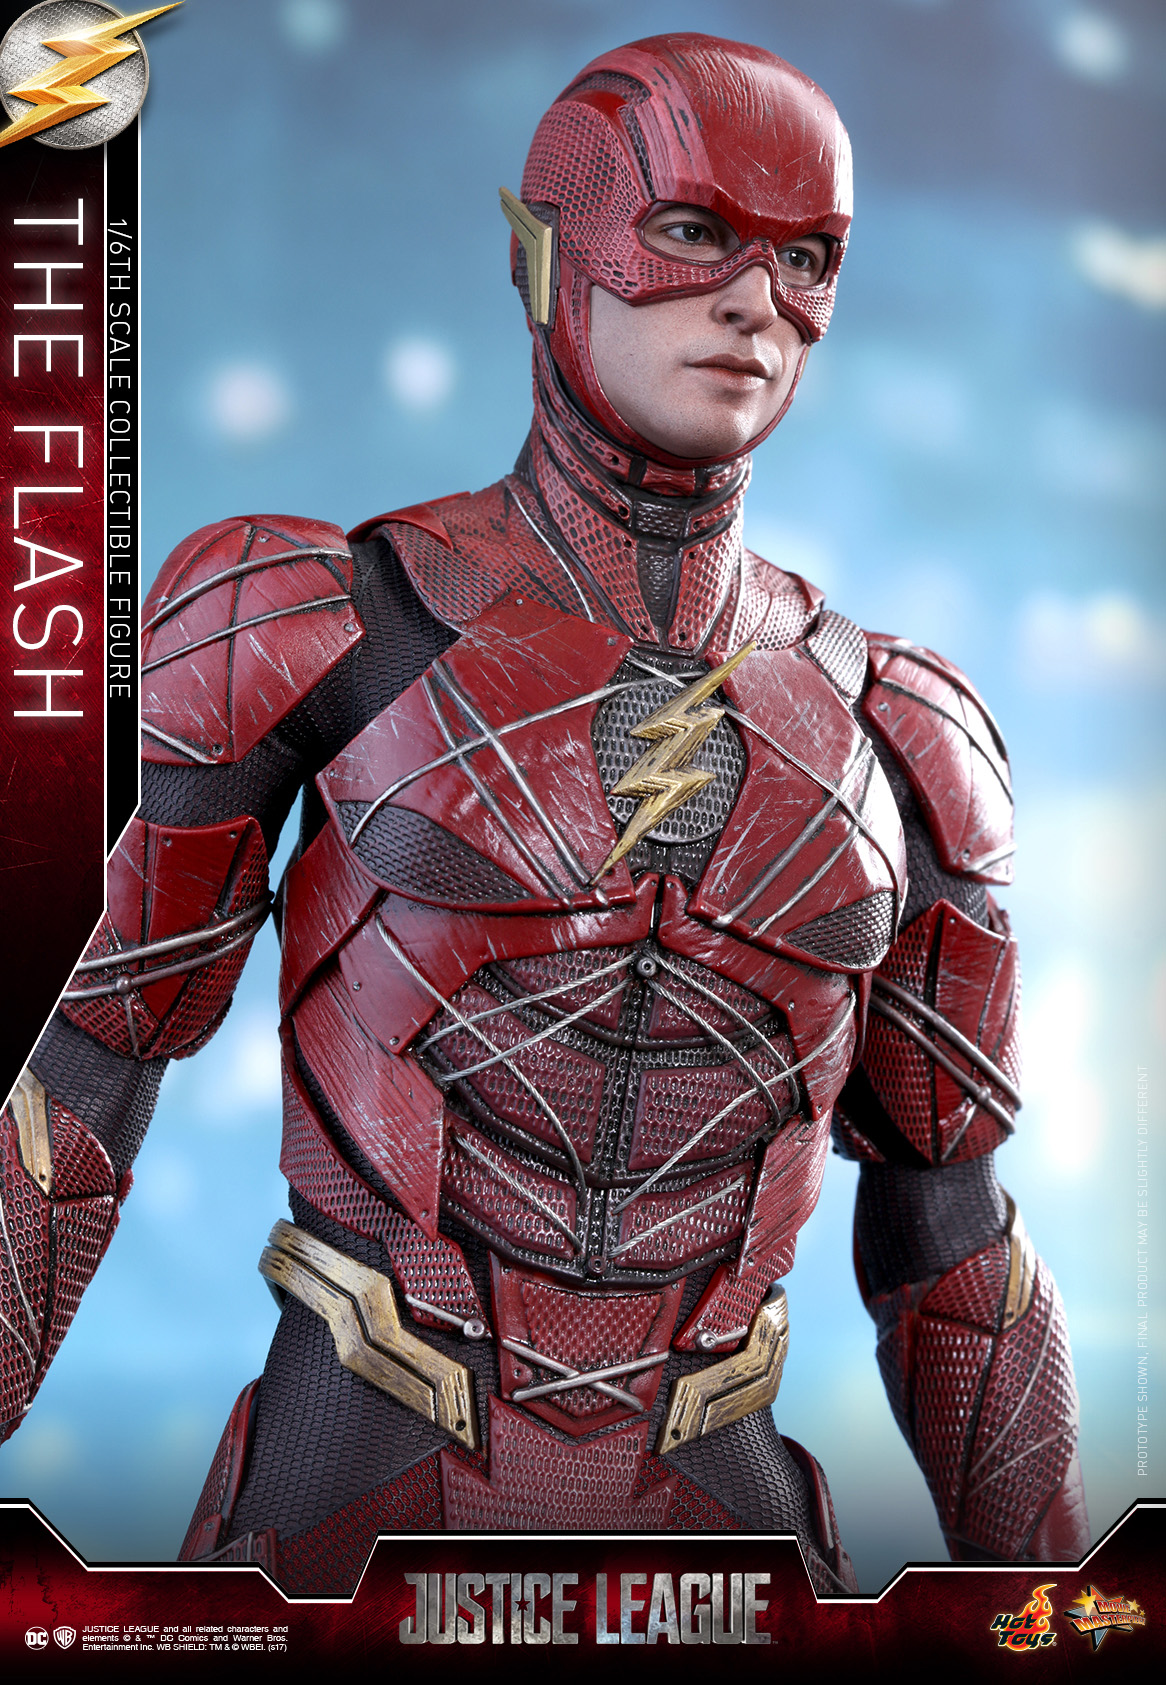 Hot Toys - Justice League - The Flash Collectible Figure_PR06.jpg